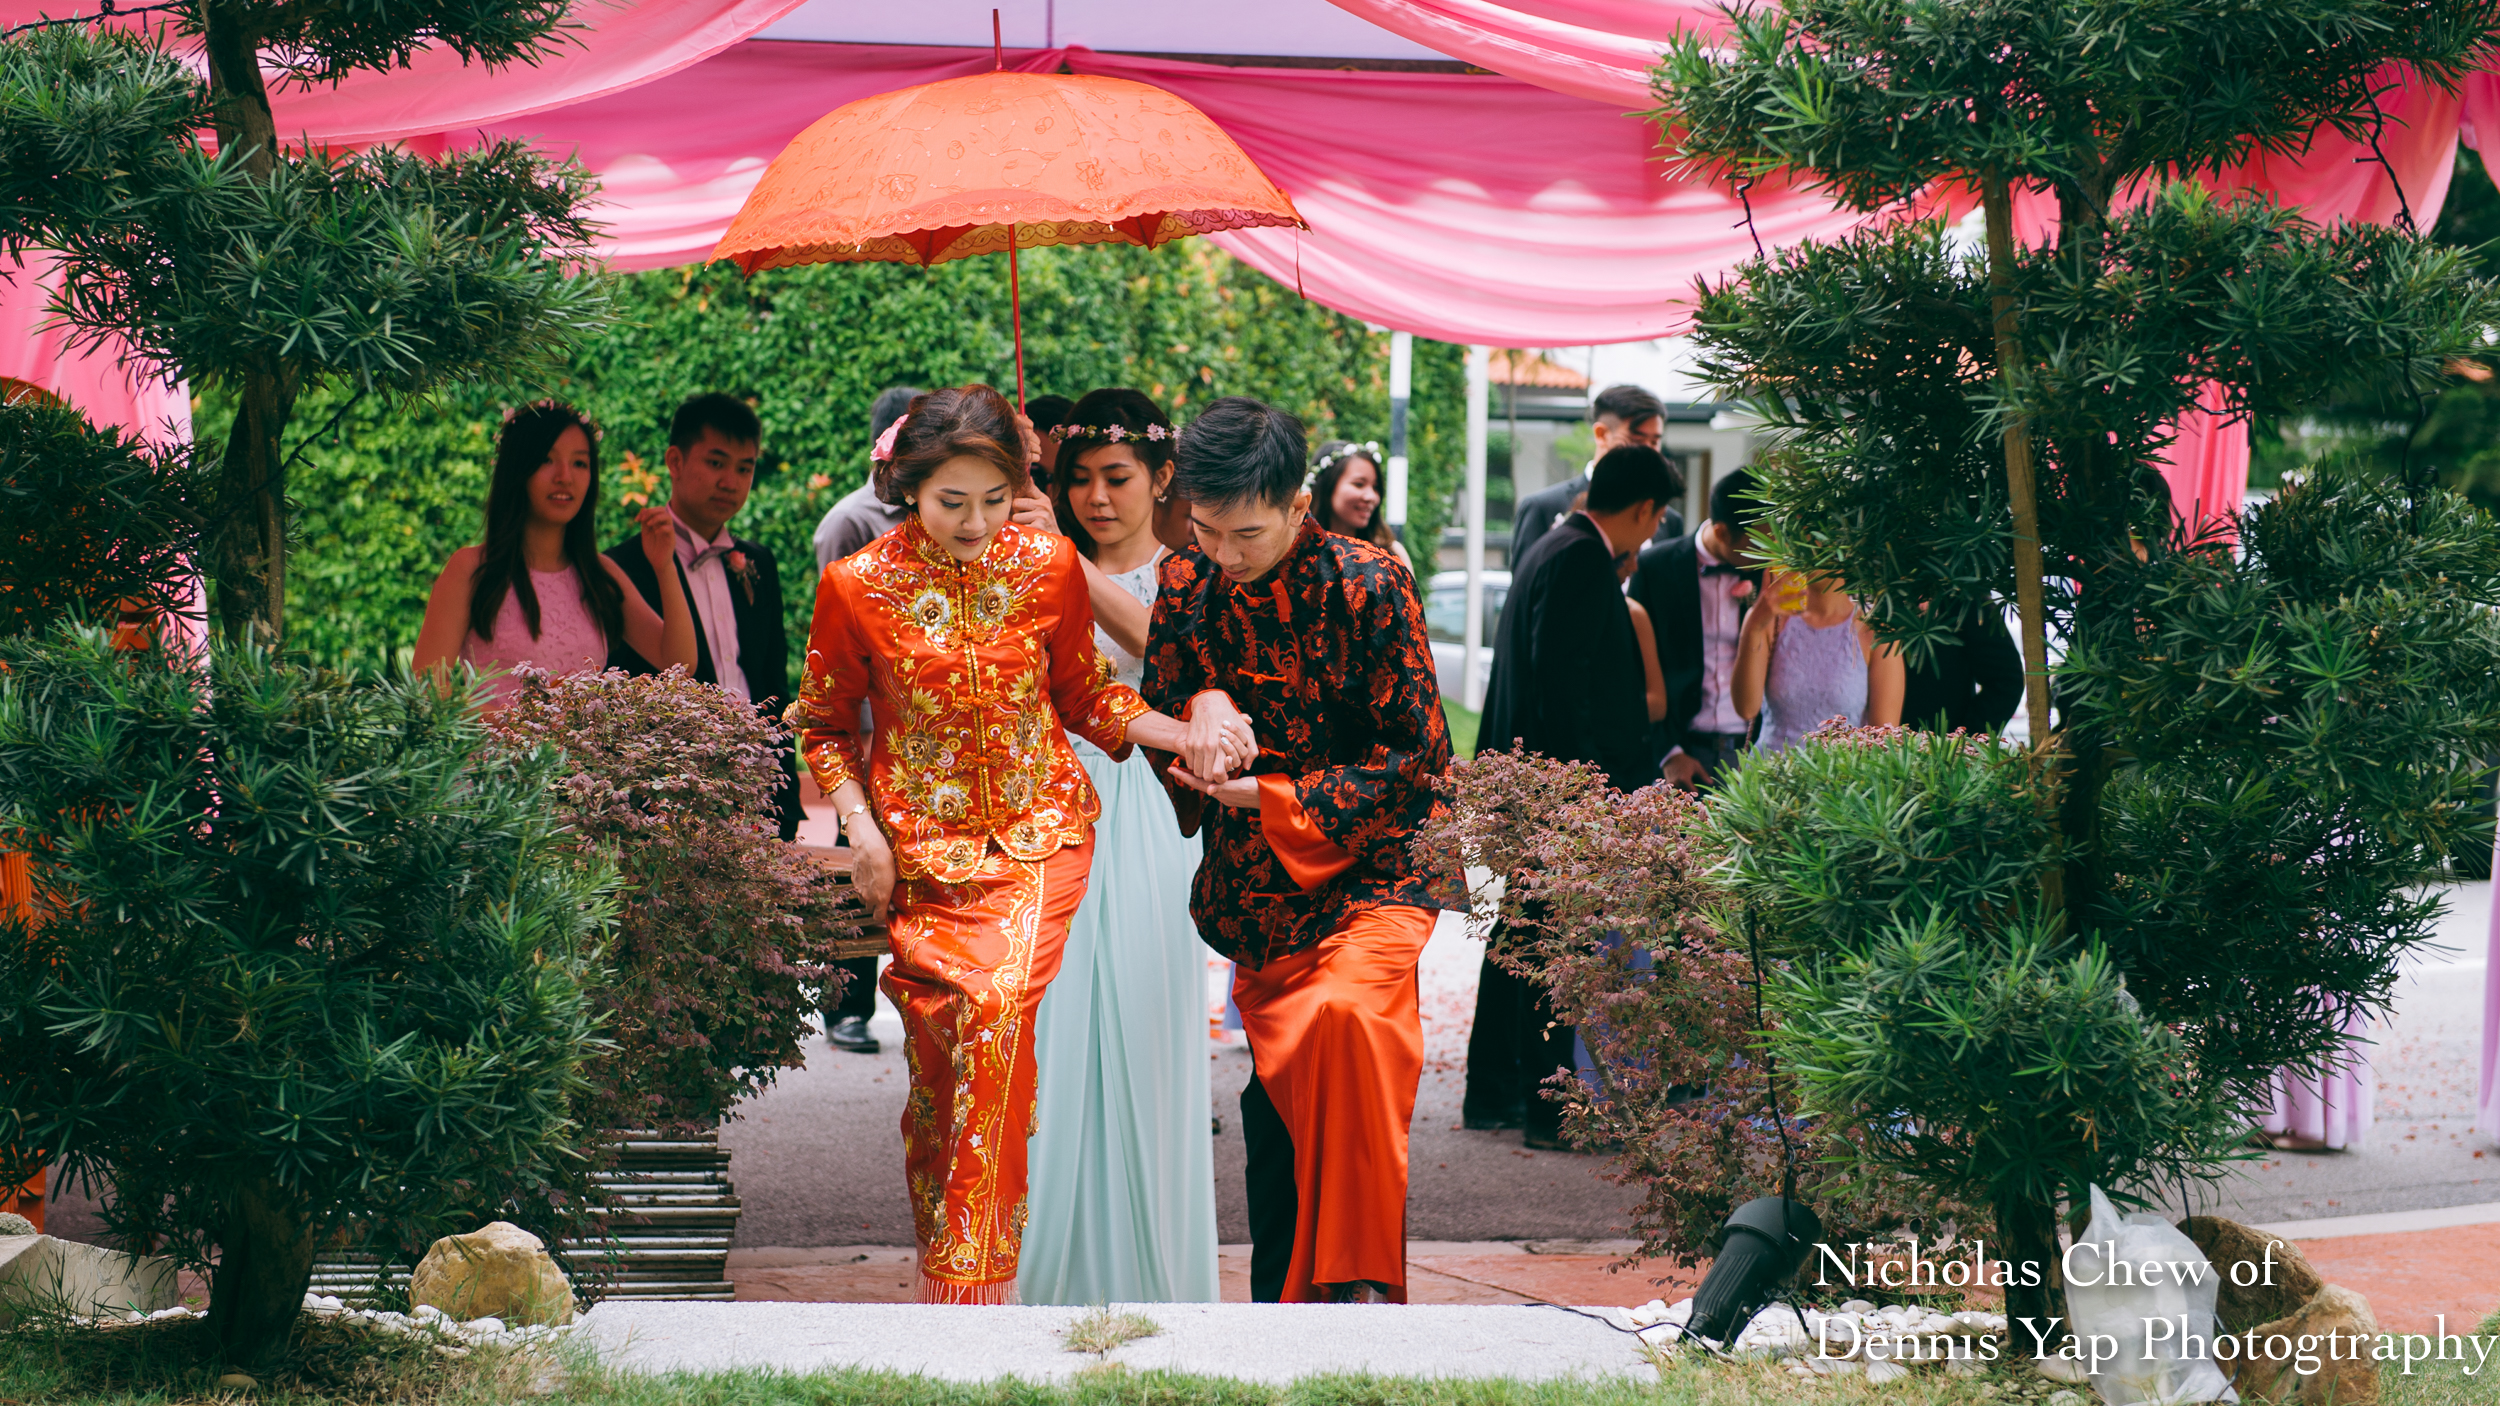 Nicholas Chew profile wedding natural candid moments chinese traditional church garden of dennis yap photography008Nicholas Profile-8.jpg